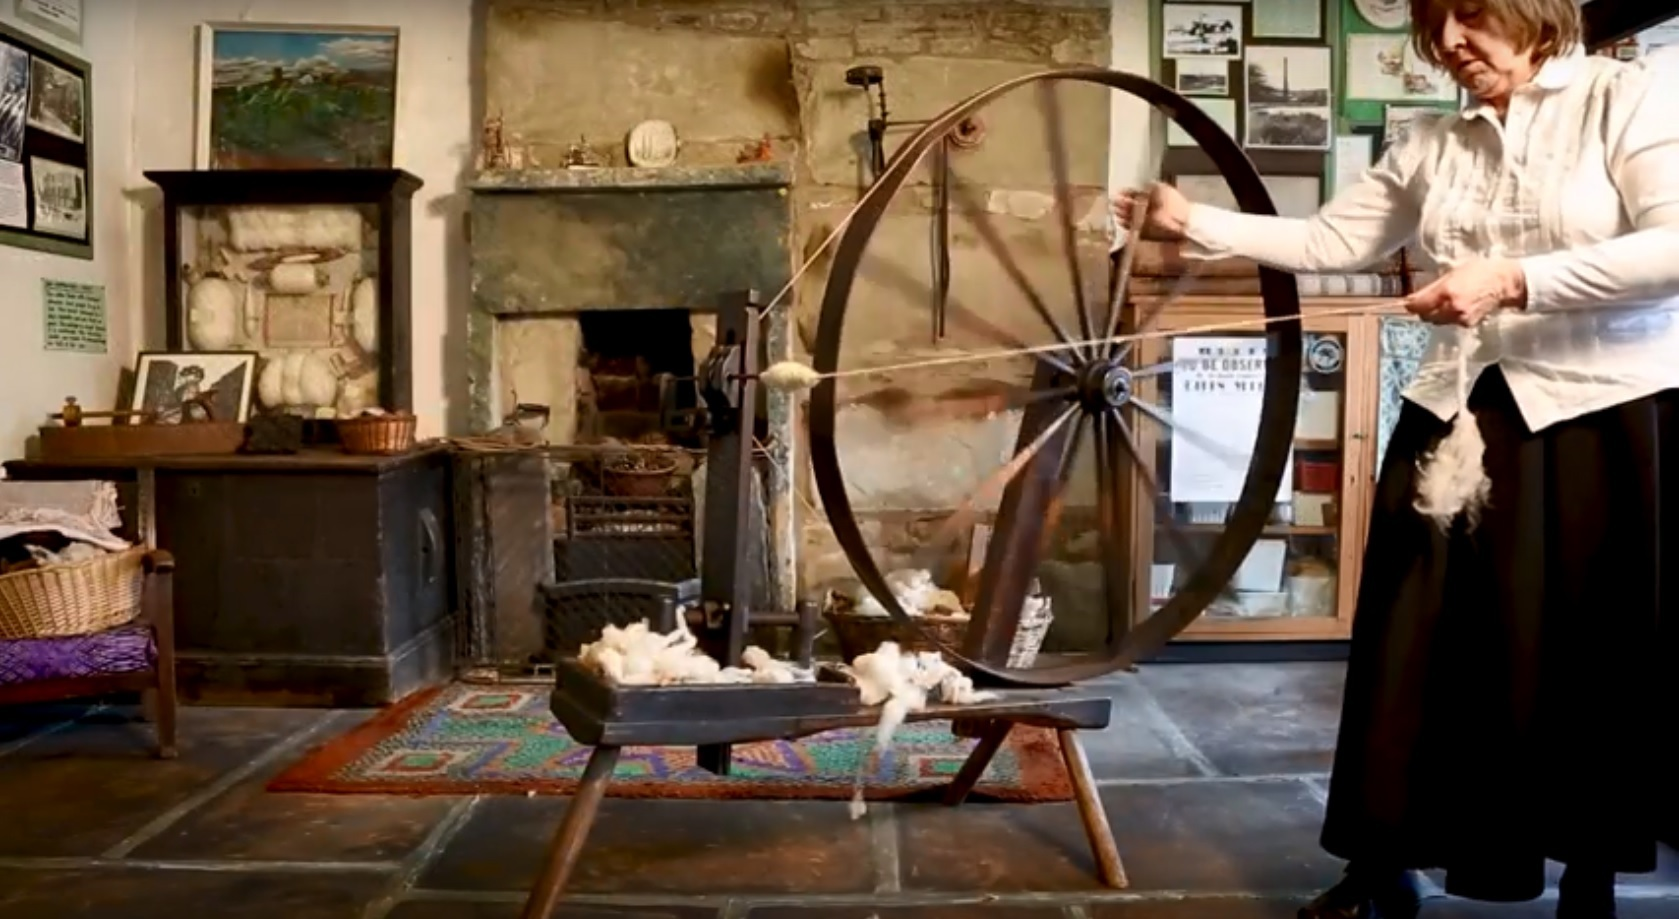 An example of the equipment used in the video